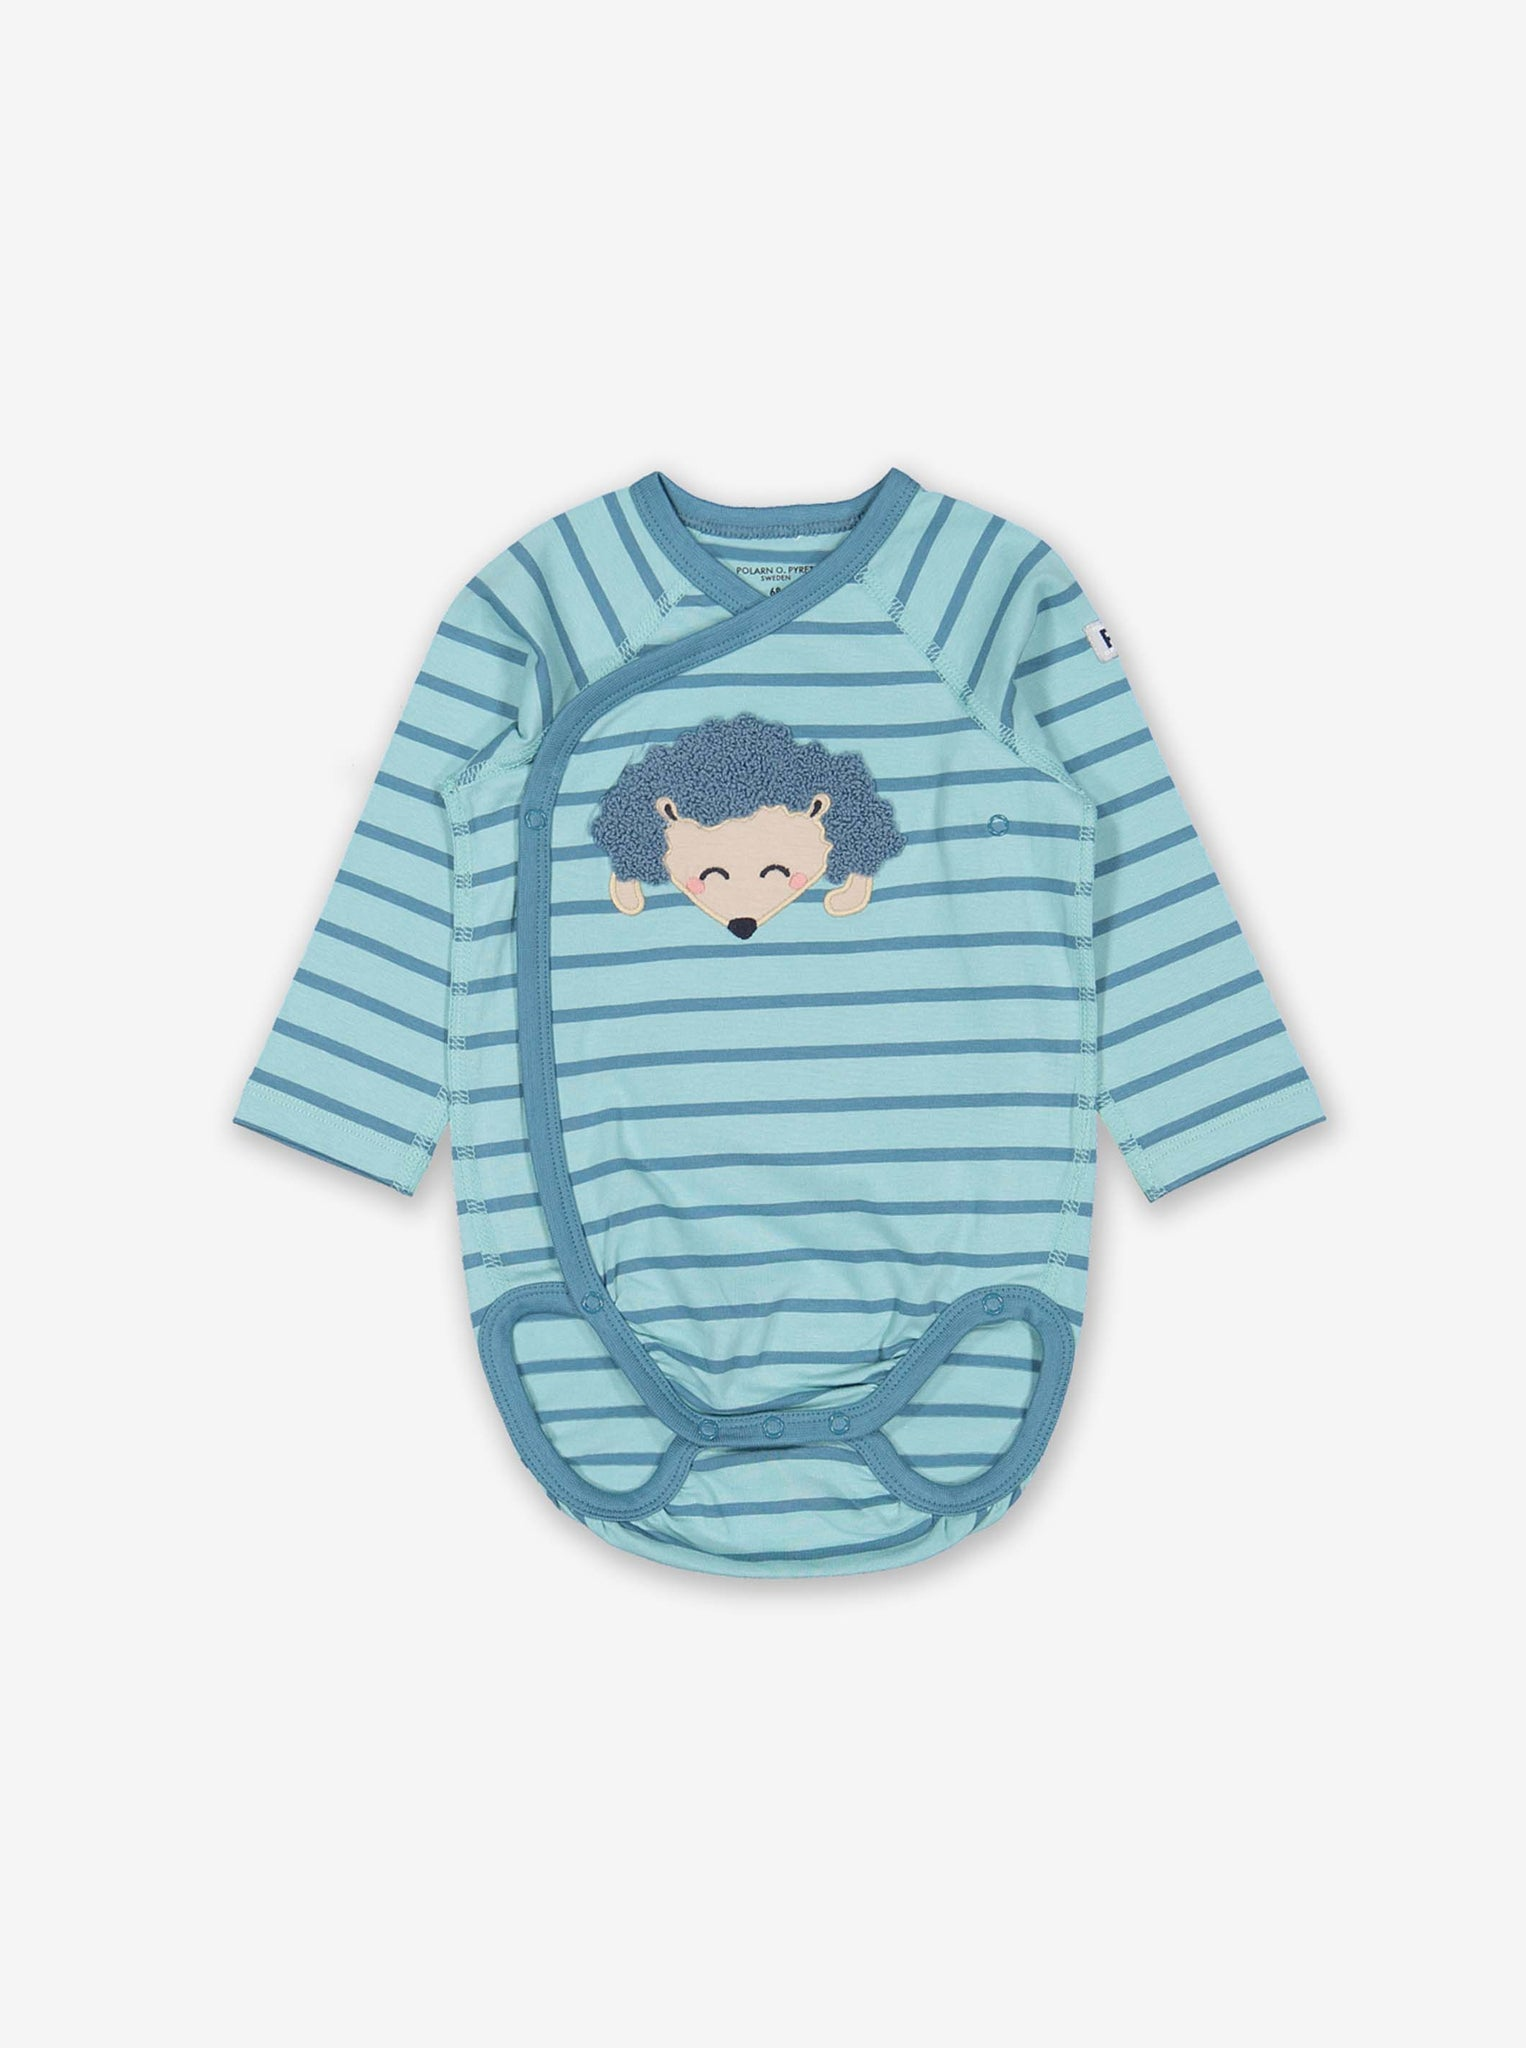 Hedgehog Wraparound Baby Bodysuit